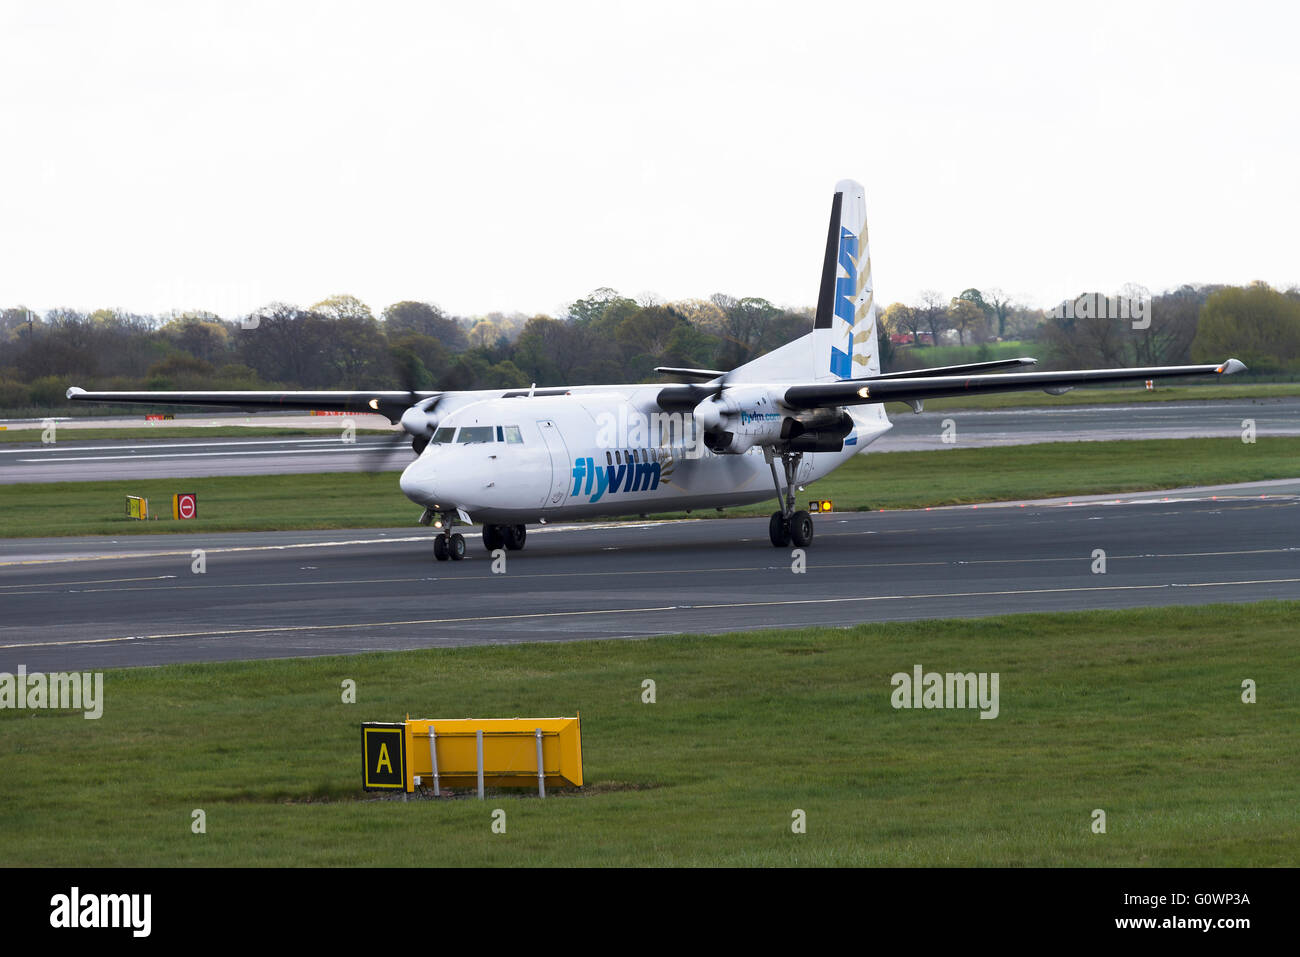 VLM Airlines Fokker 50 Turboprop Airliner OO-VLI Taxiing at Manchester International Airport England United Kingdom - Stock Image